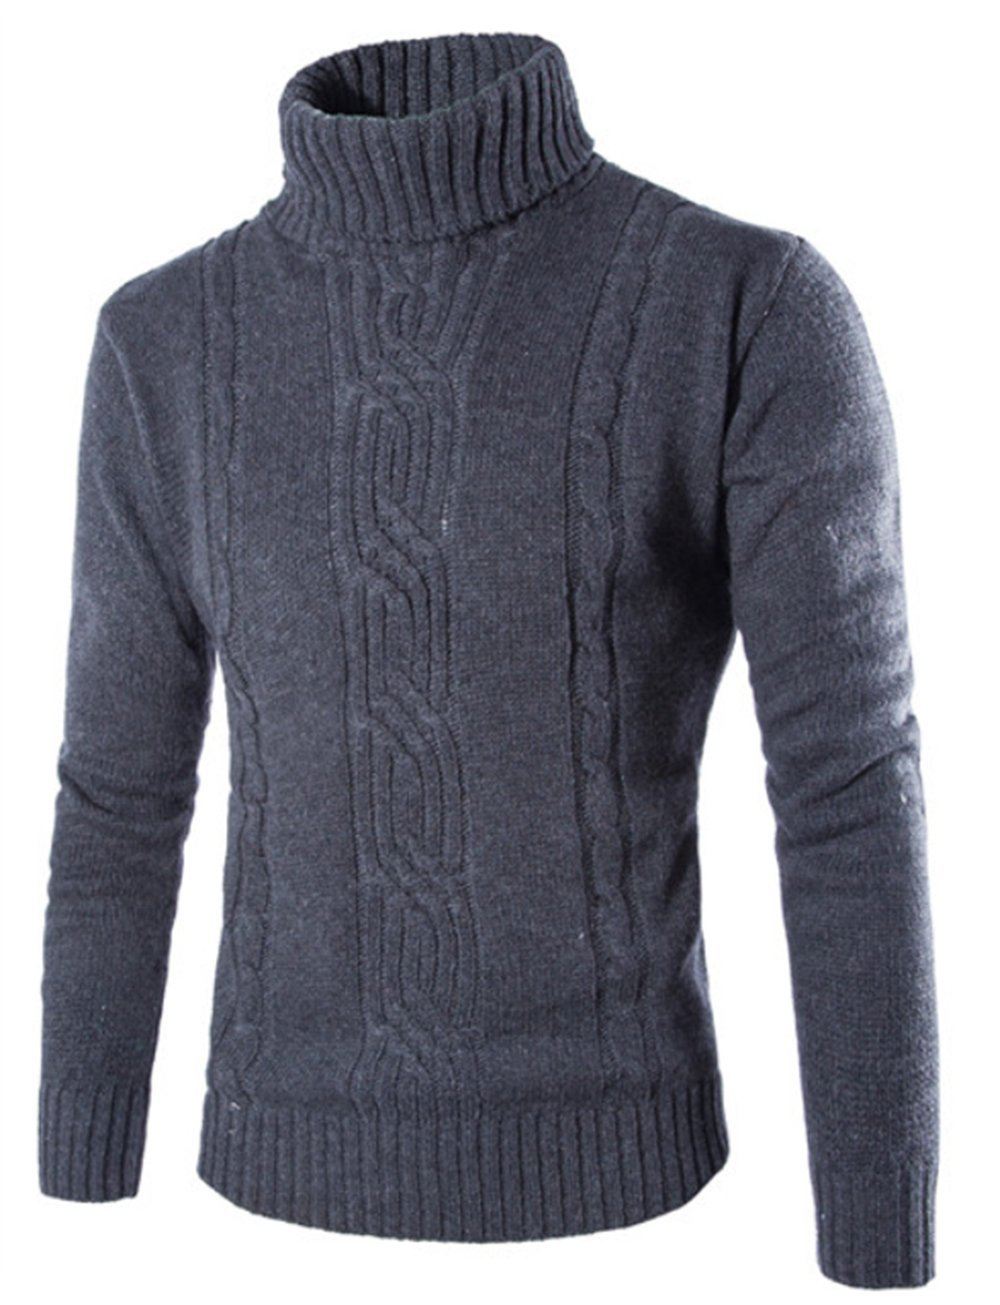 Men's Turtleneck Long Sleeve Sweater Knit Pullover Sweater Slim Fit